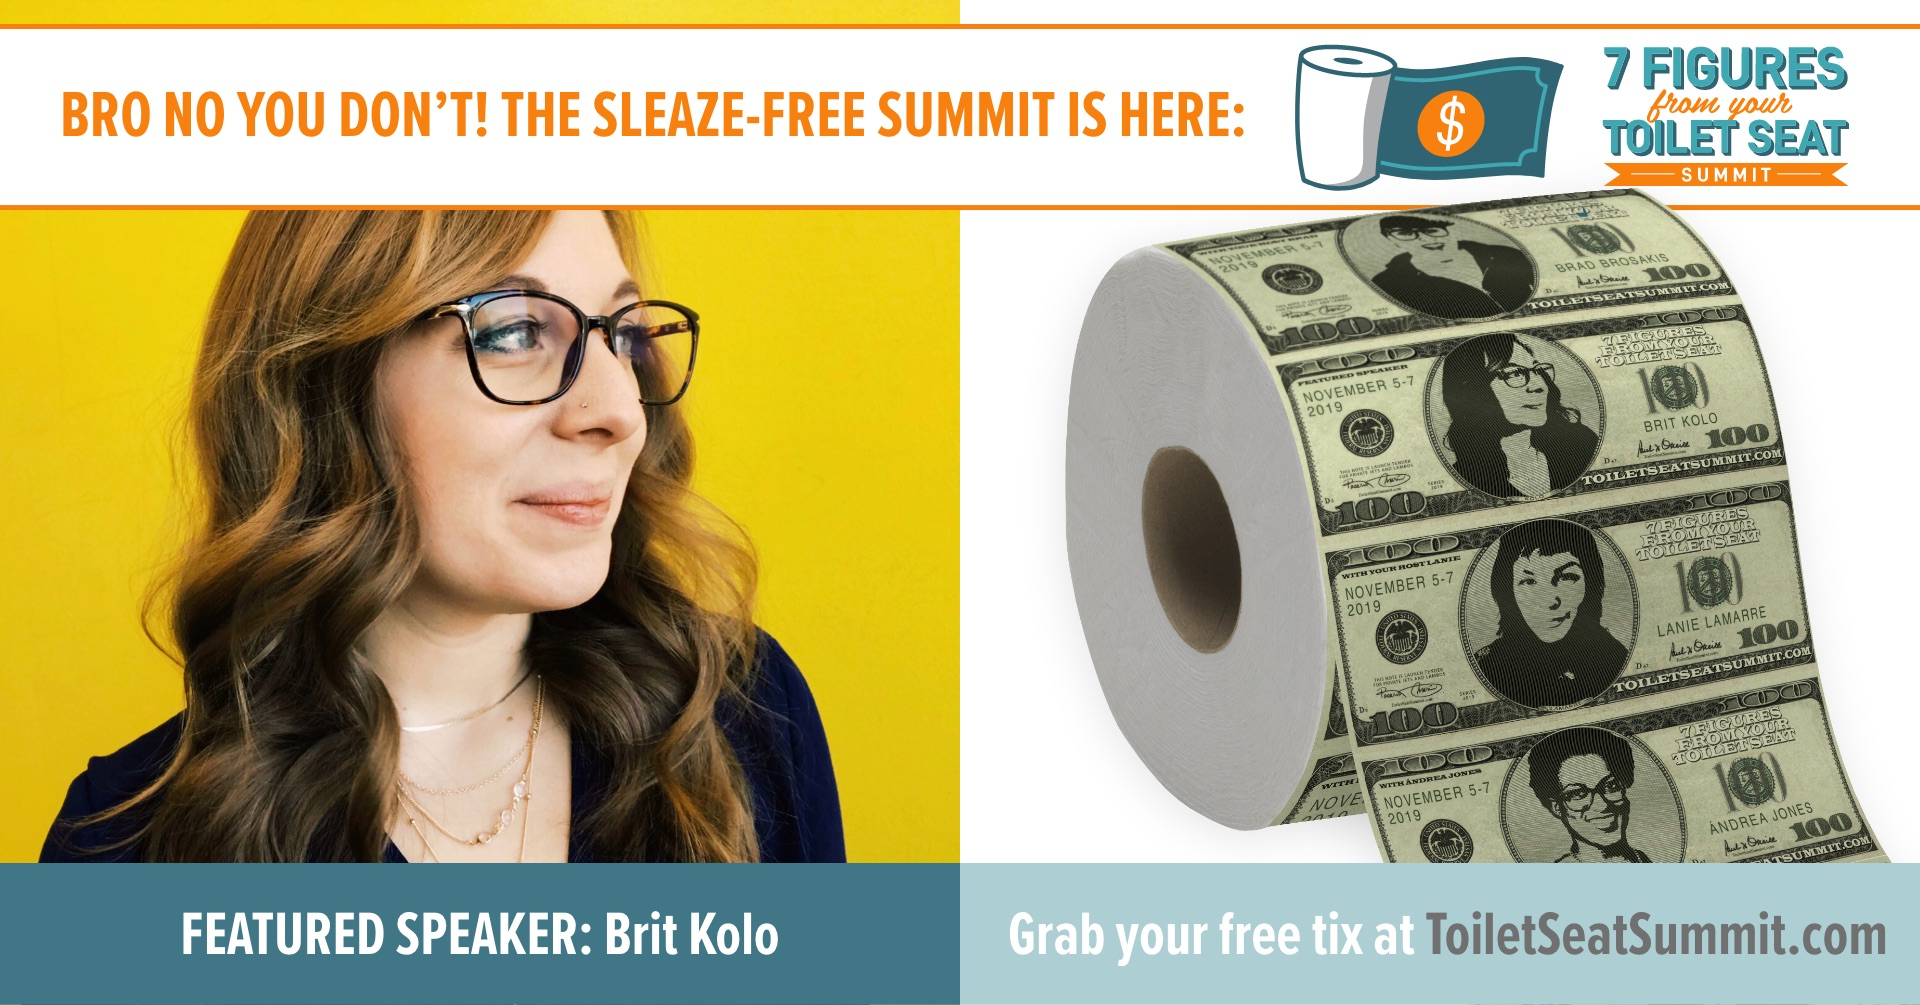 Brit Kolo on the Toilet Seat Summit hosted by RKA Rachael Kay Albers and Lanie Lamarre of MissGSD